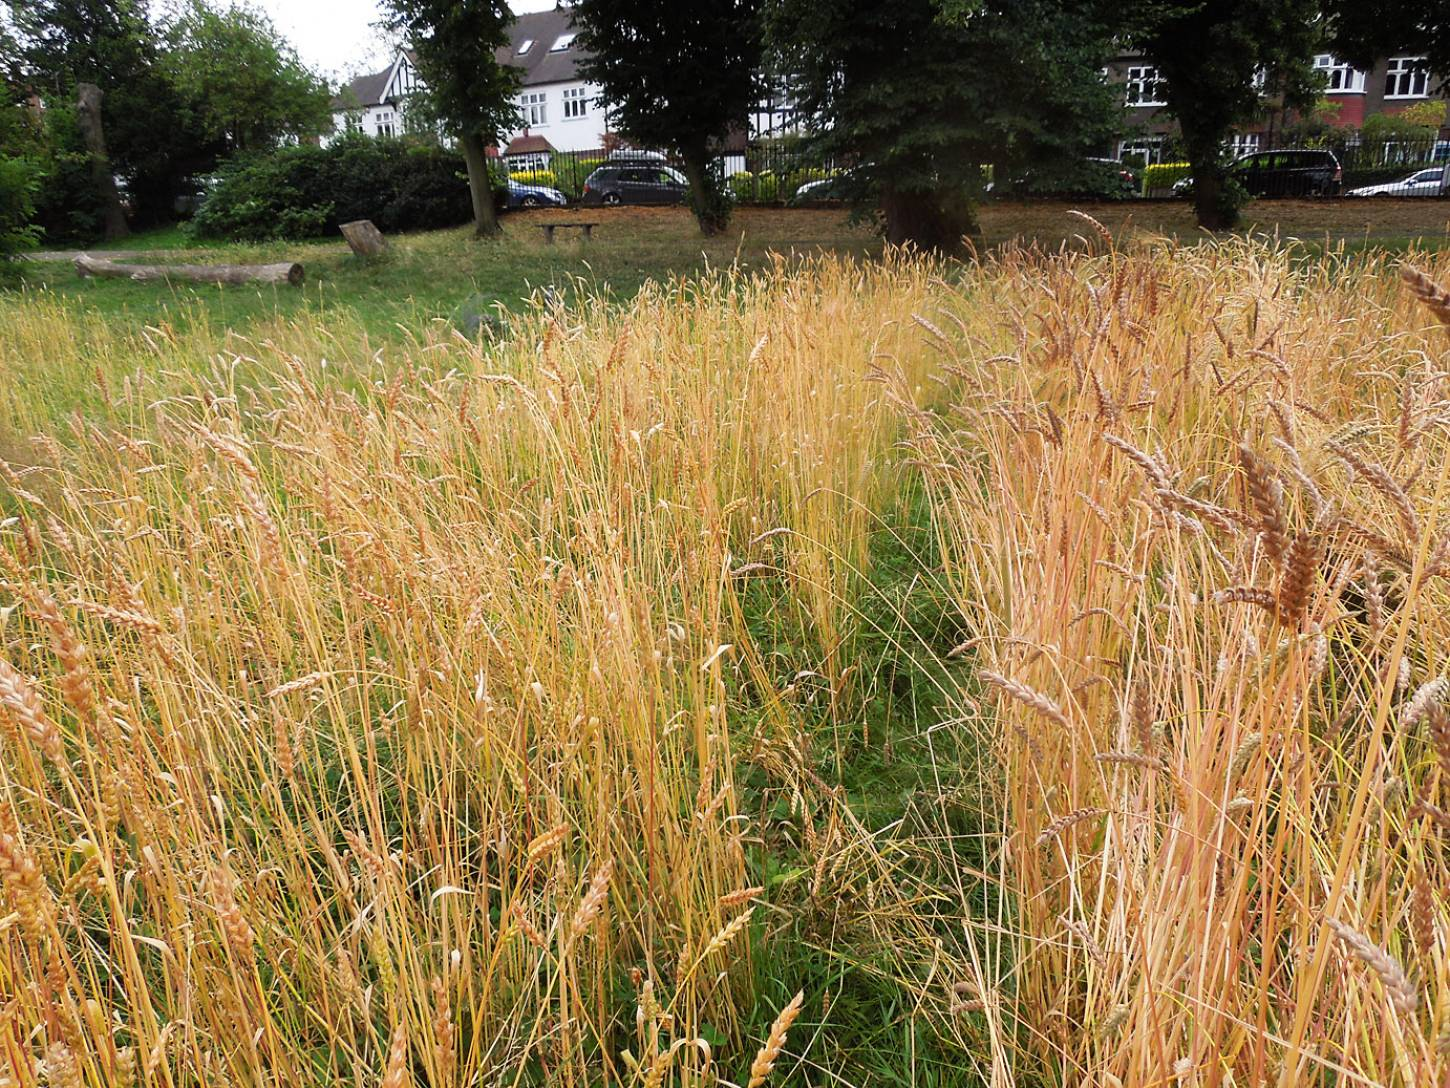 Ruskin Park plot review #3, Orange Devon Blue Rough Chaff on left, Old Kent Red to right and Kent Old Hoary beyond - 1:25pm&nbsp;25<sup>th</sup>&nbsp;Jul.&nbsp;'16